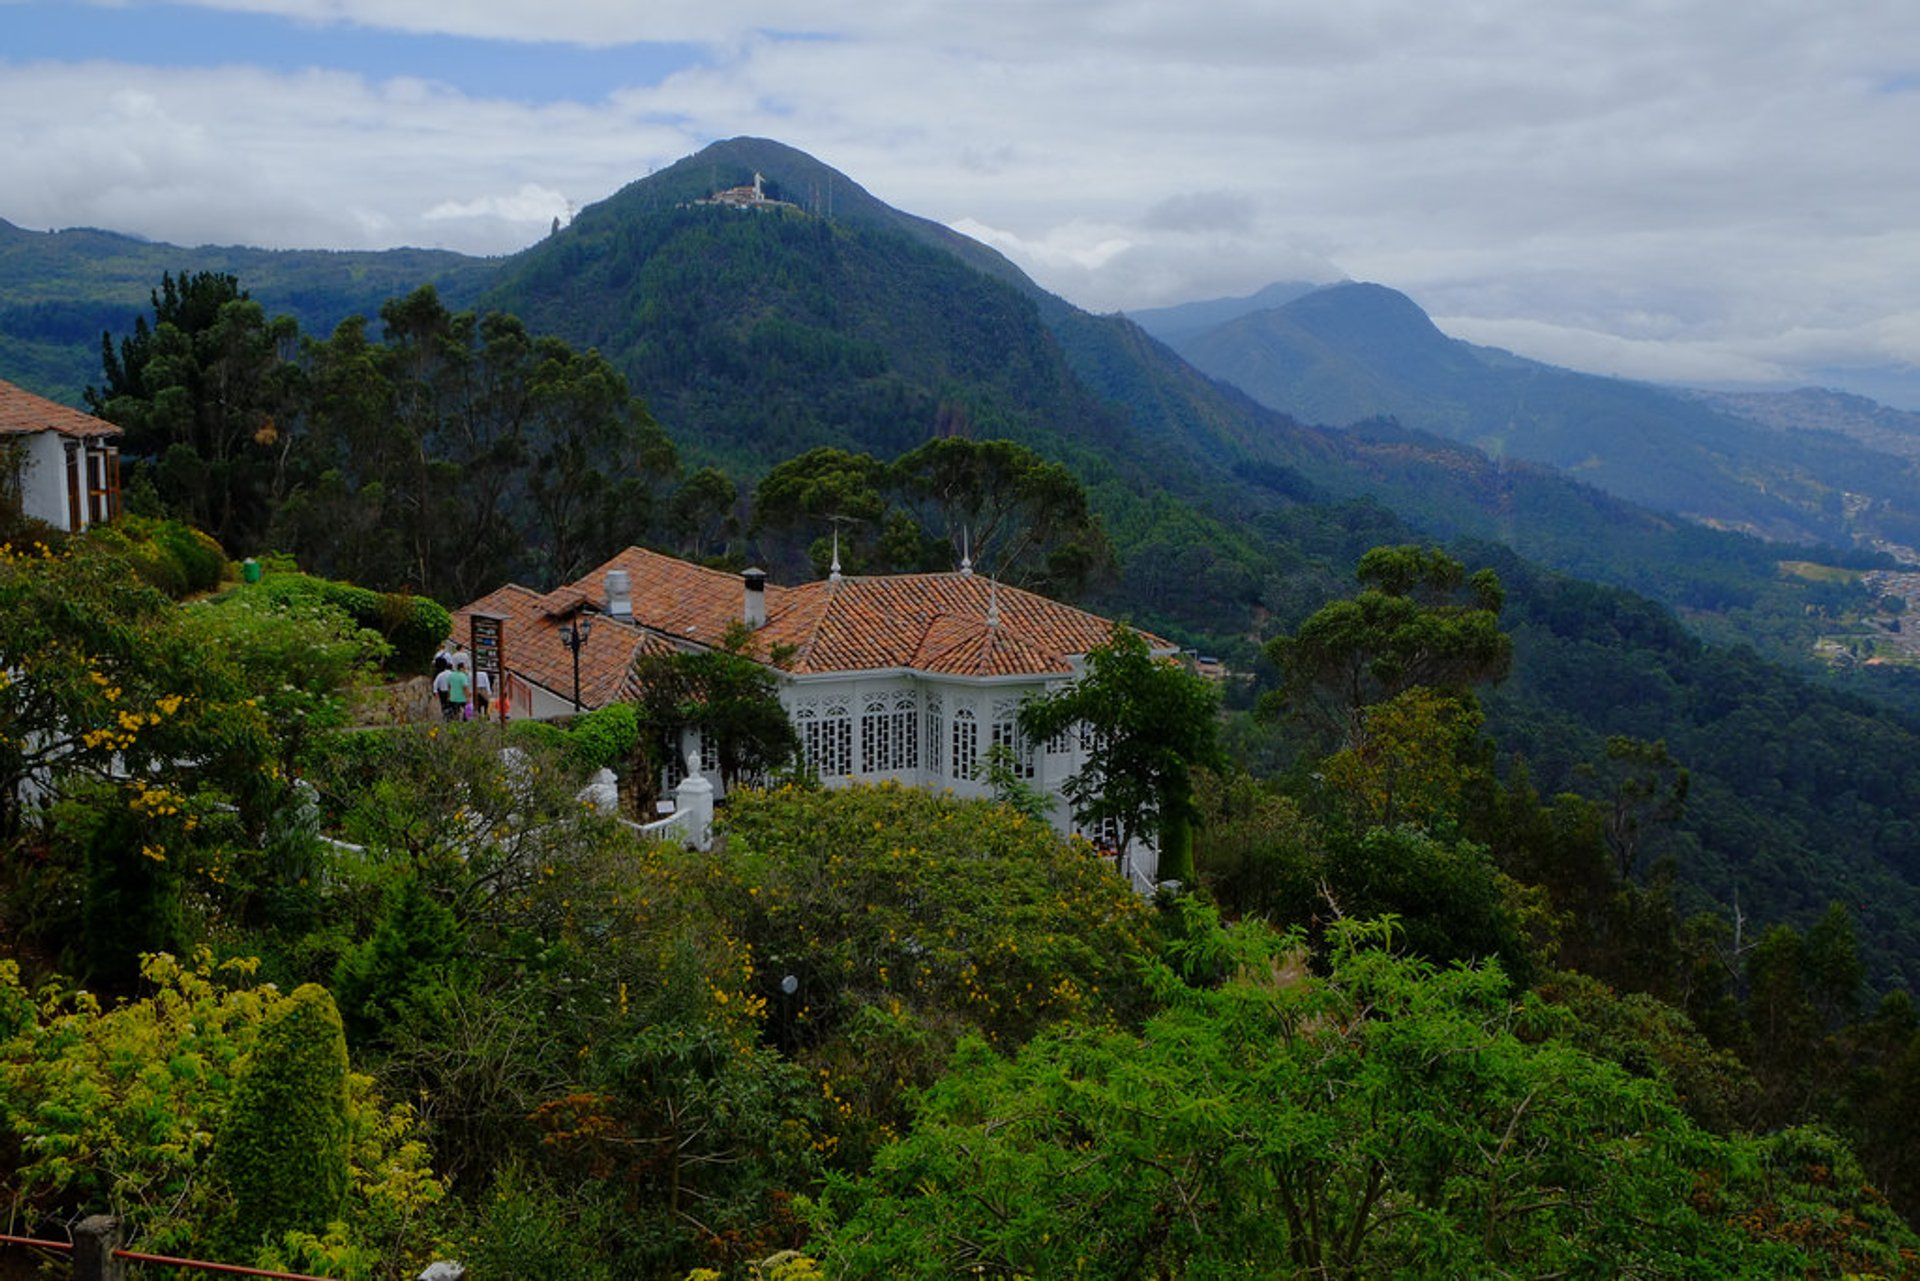 Monserrate Mountain in Colombia 2020 - Best Time